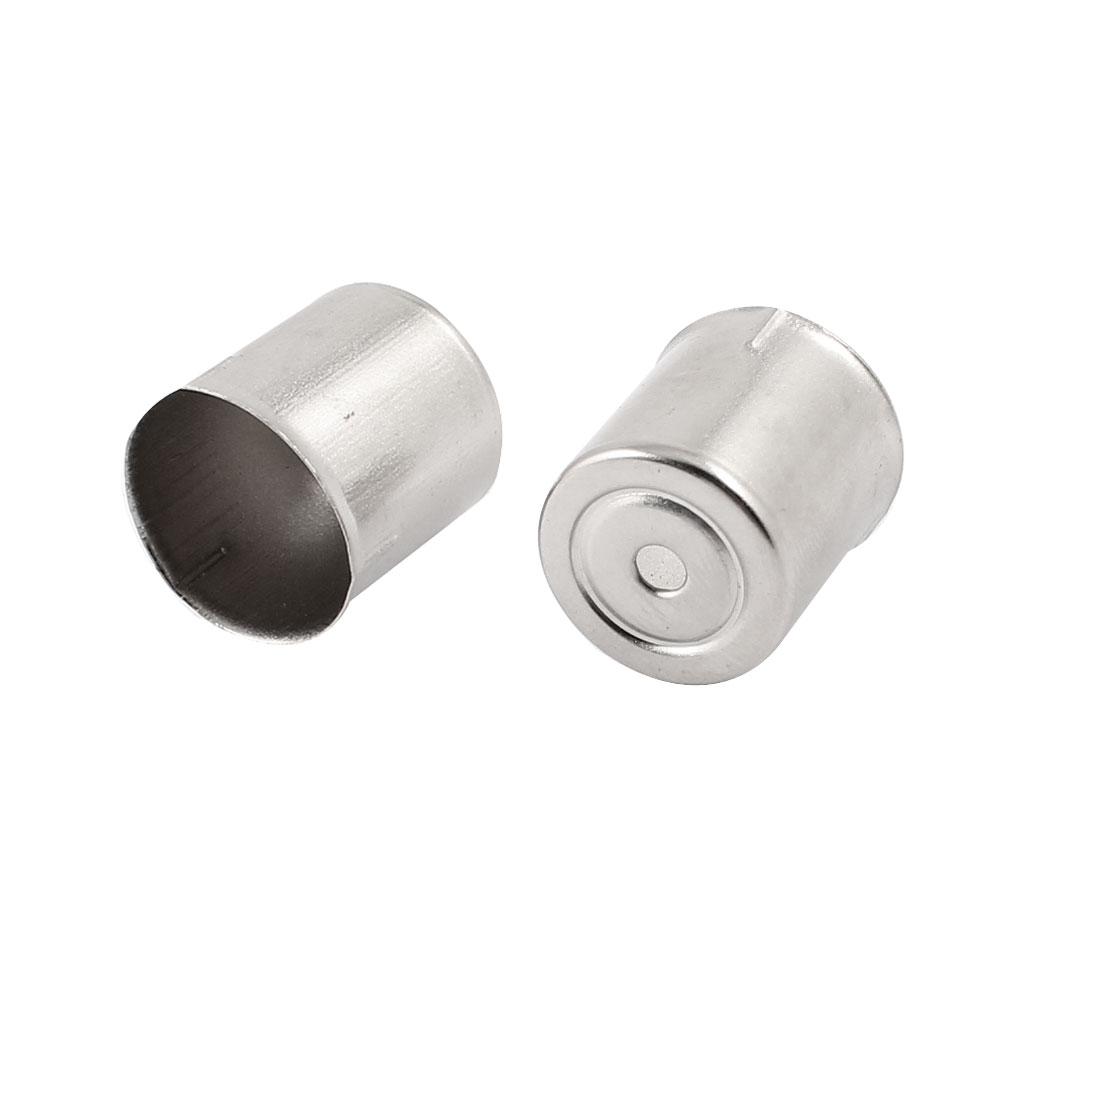 2 Pcs Home Kitchen Cylinder Shaped Microwave Magnetron Cap Silver Tone